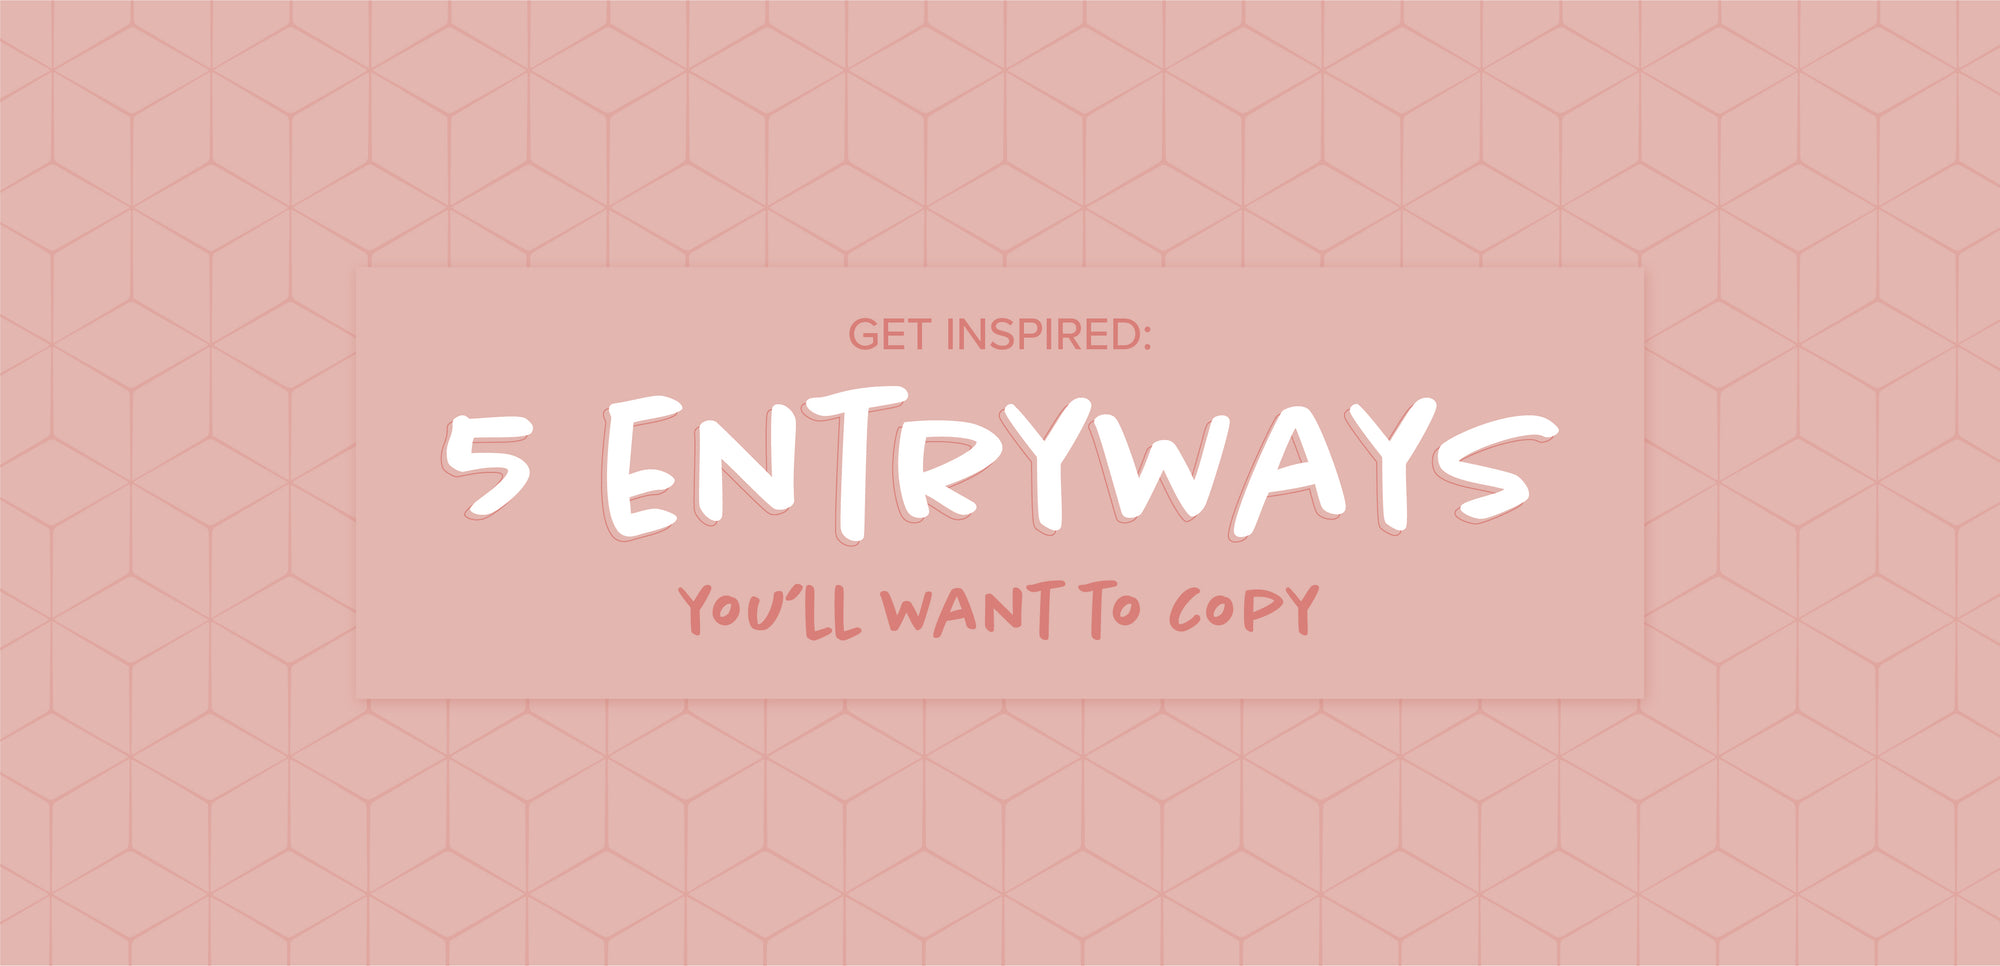 Get Inspired: 5 Entryways You'll Want to Copy